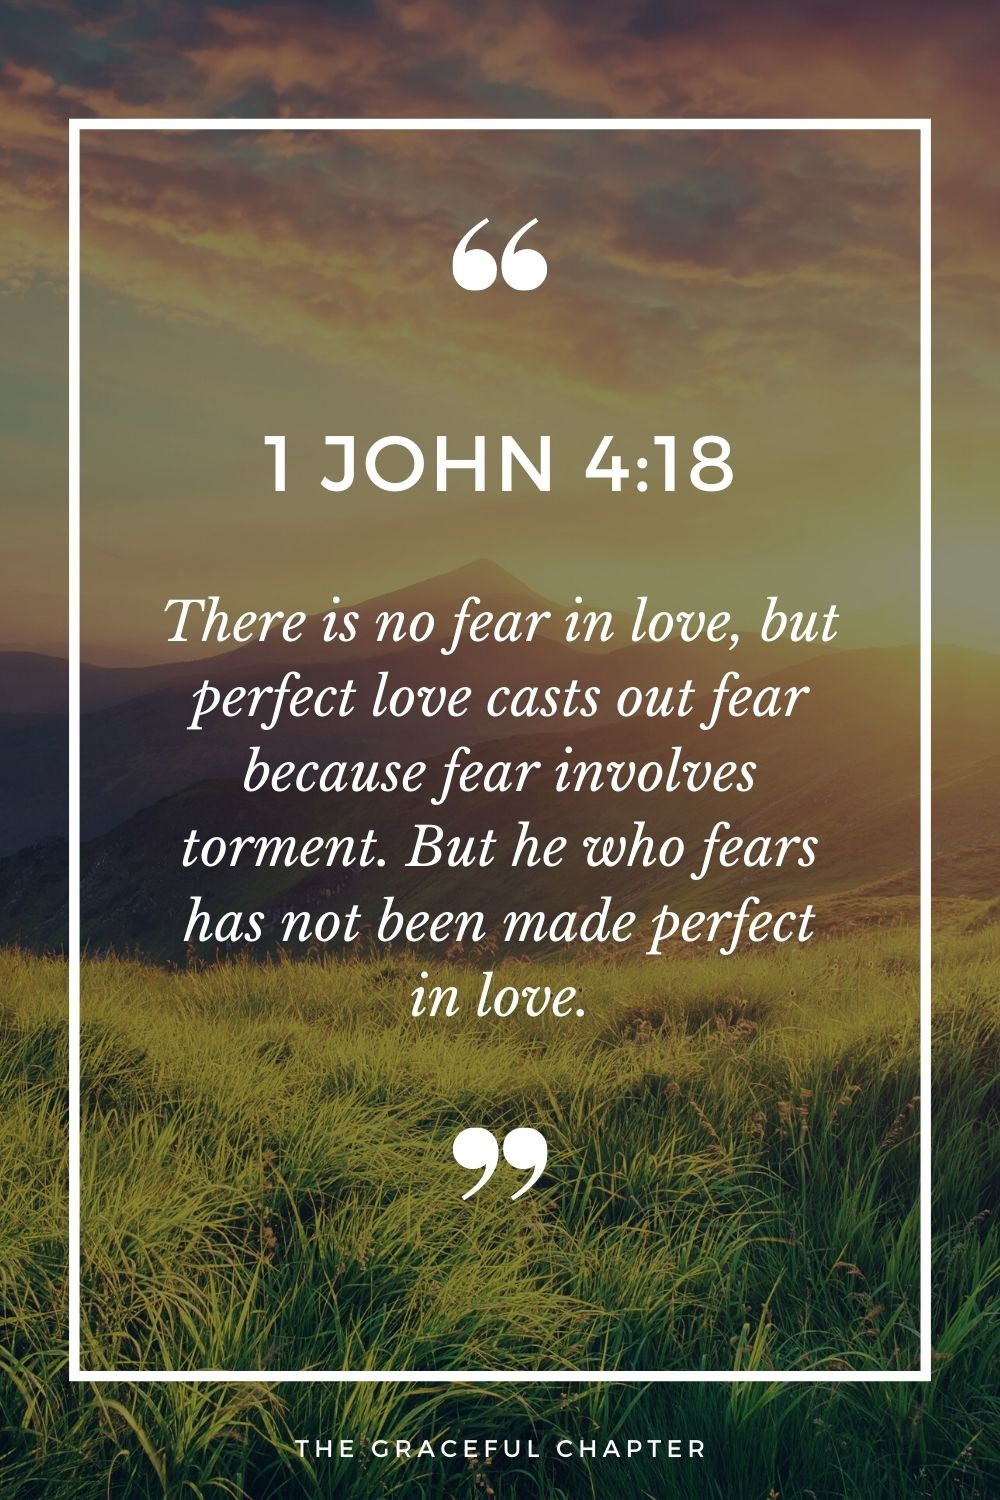 There is no fear in love, but perfect love casts out fear because fear involves torment. But he who fears has not been made perfect in love.  1 John 4:18